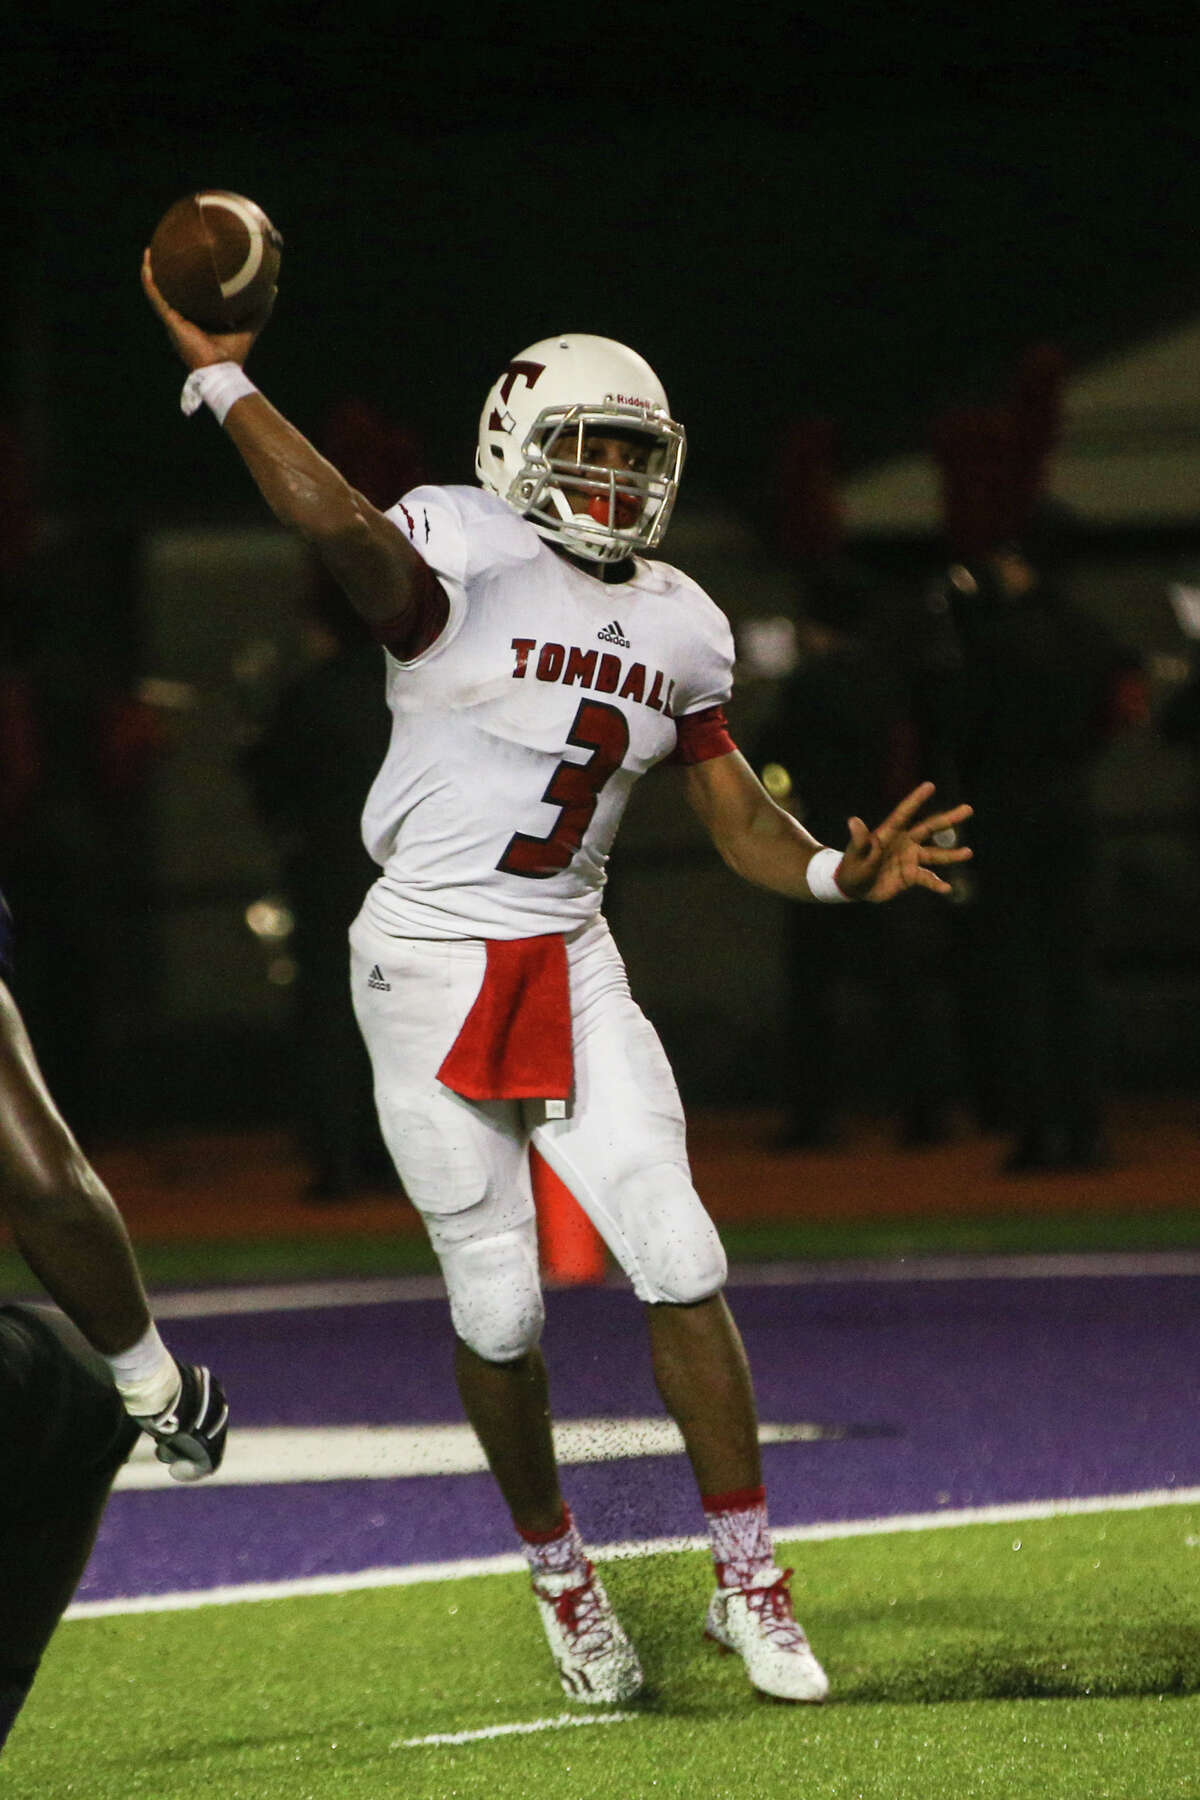 Tomball's Tybo Taylor (3) throws a pass during the varsity football game against Willis on Friday, Sept. 16, 2016, at Yates Stadium in Willis, Texas.